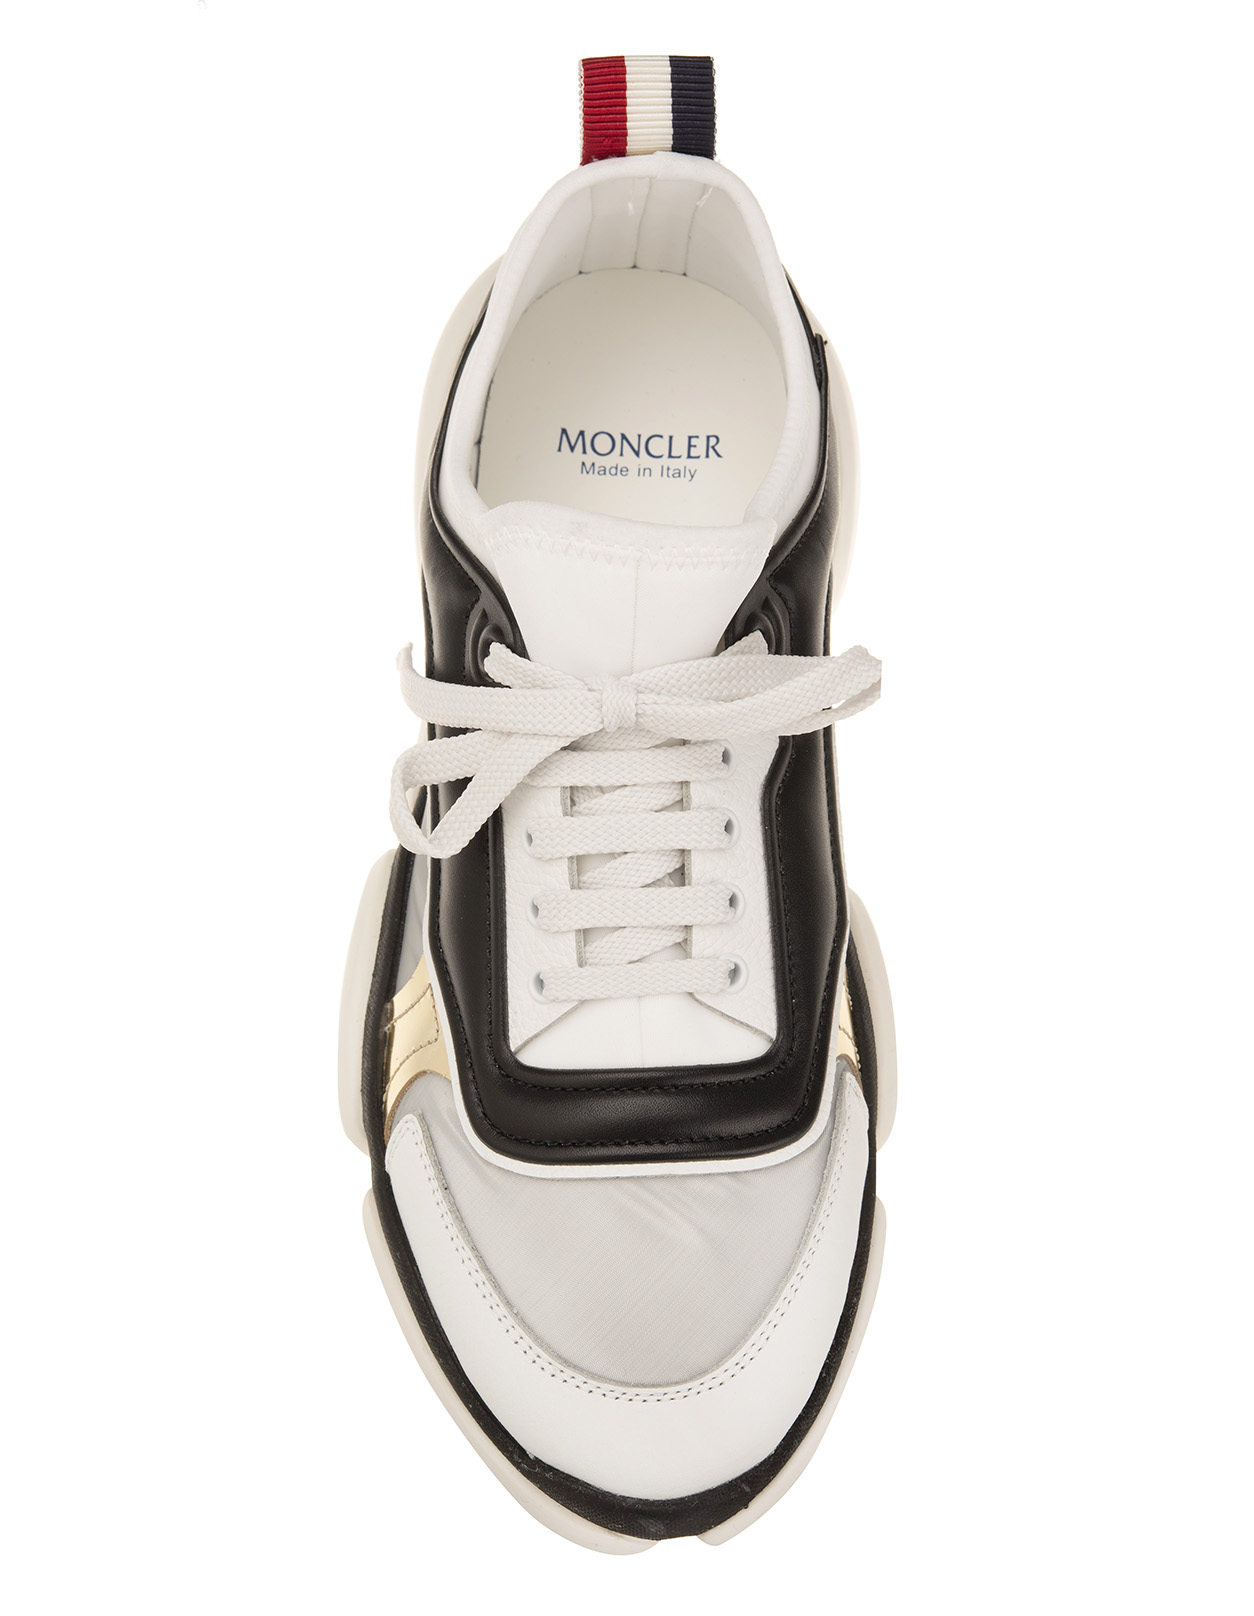 Russocapri Sneakers Sneakers Moncler Moncler Briseis Briseis mN80wOvn